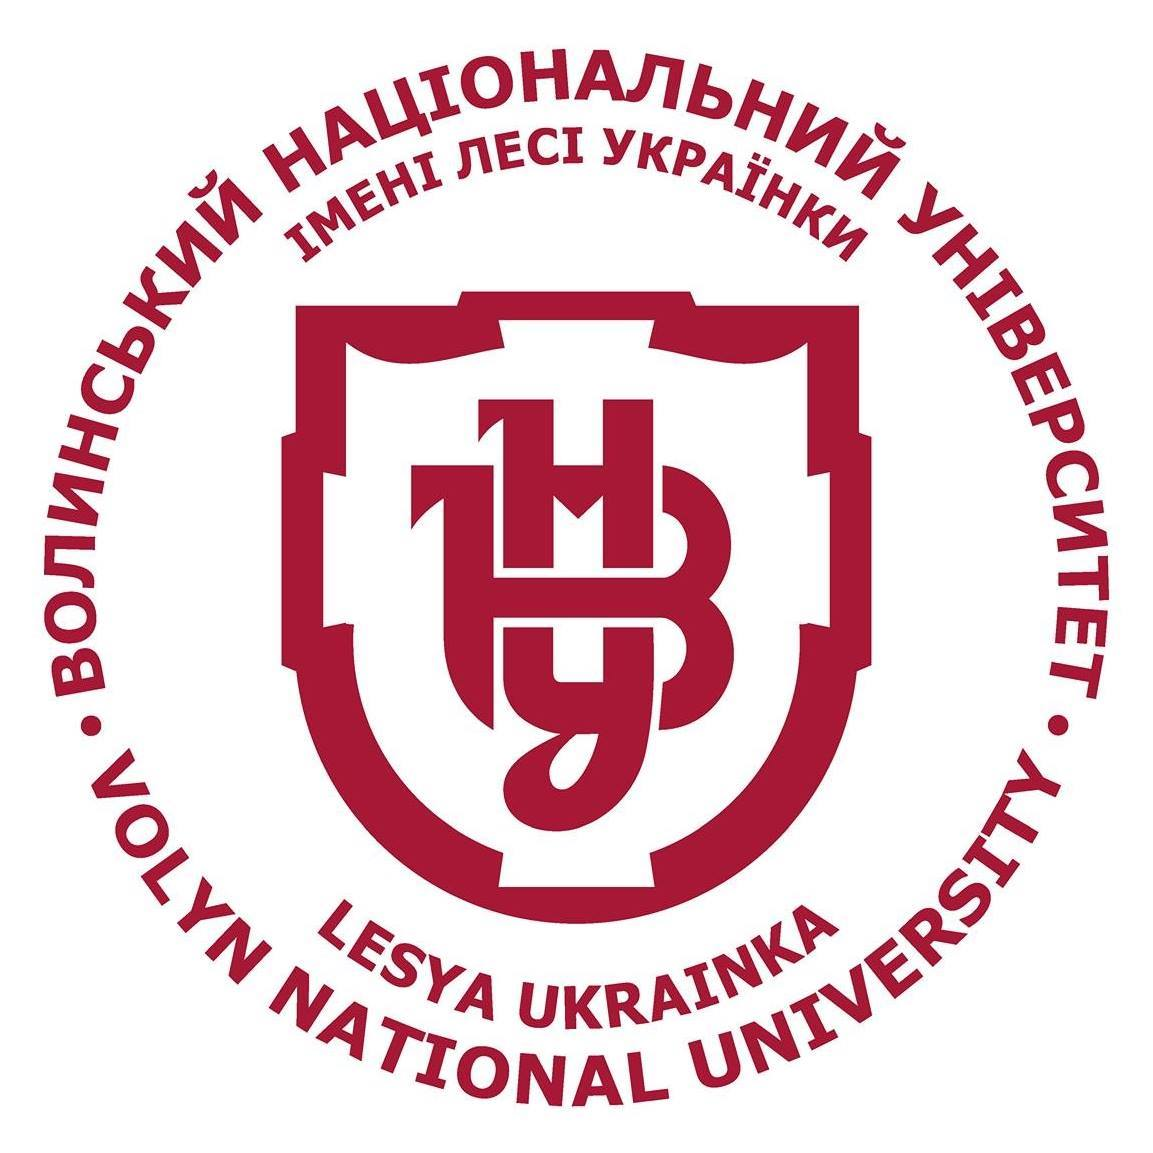 Lesya Ukrainka Volyn National University